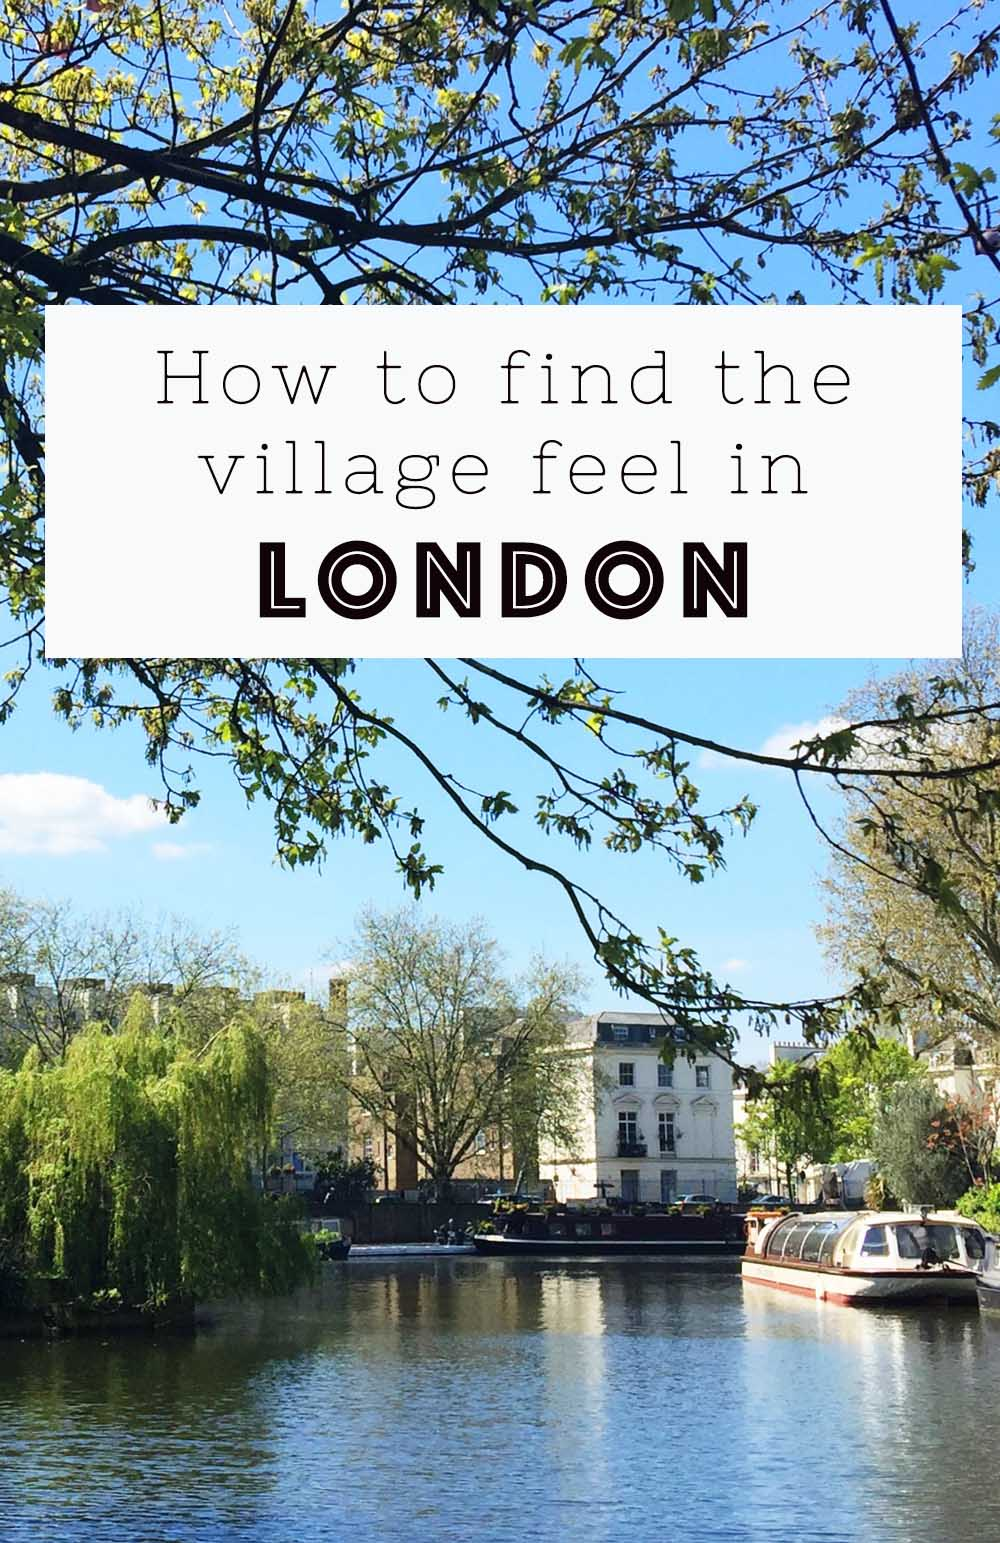 How to find the village feel in London – Victoria's Insider Guide to London